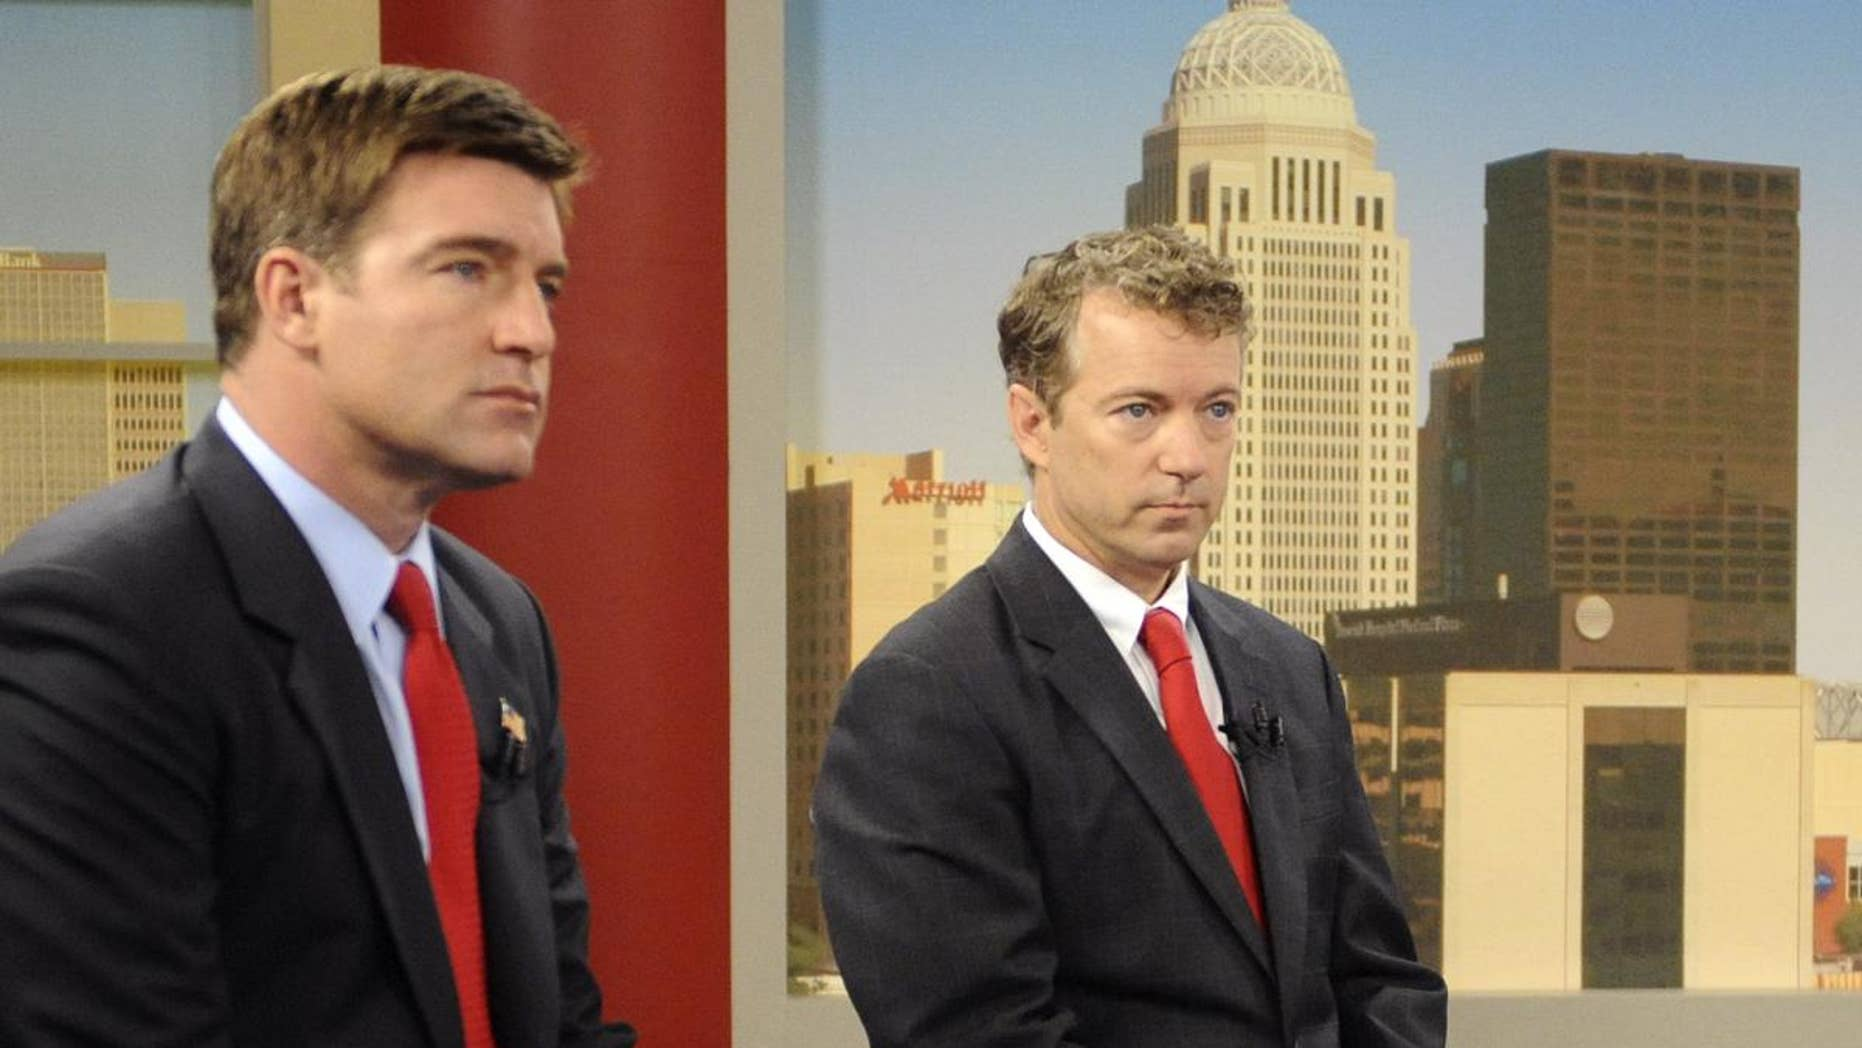 Candidates for Kentucky Senate, Democrat Jack Conway, left, and Republican Rand Paul prepare for a debate in Louisville, Ky, Sunday, Oct. 3, 2010. (AP Photo/Patti Longmire)